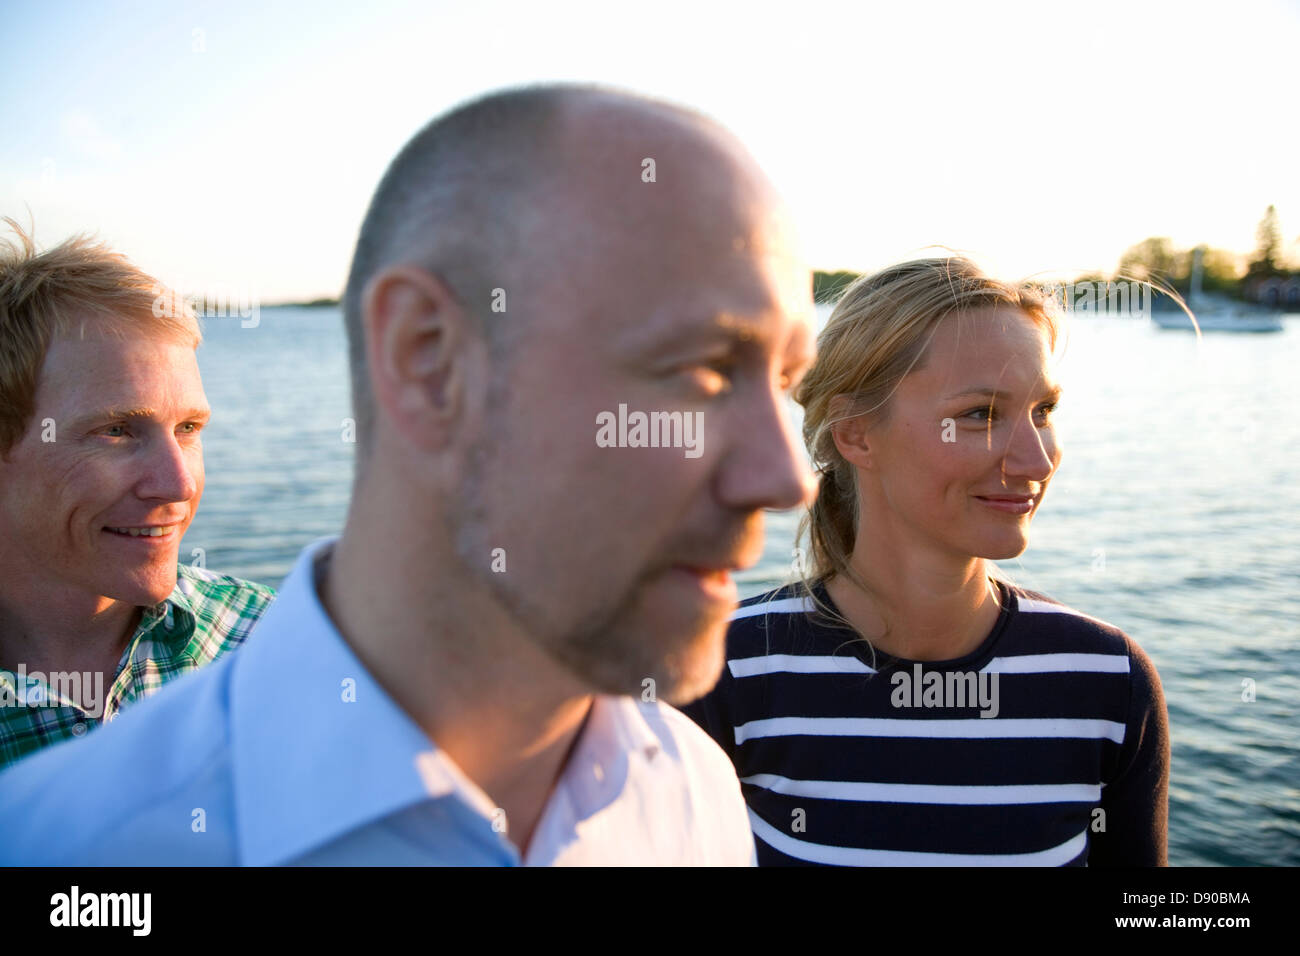 Three persons standing by the water, Fejan, Stockholm archipelago, Sweden. Stock Photo